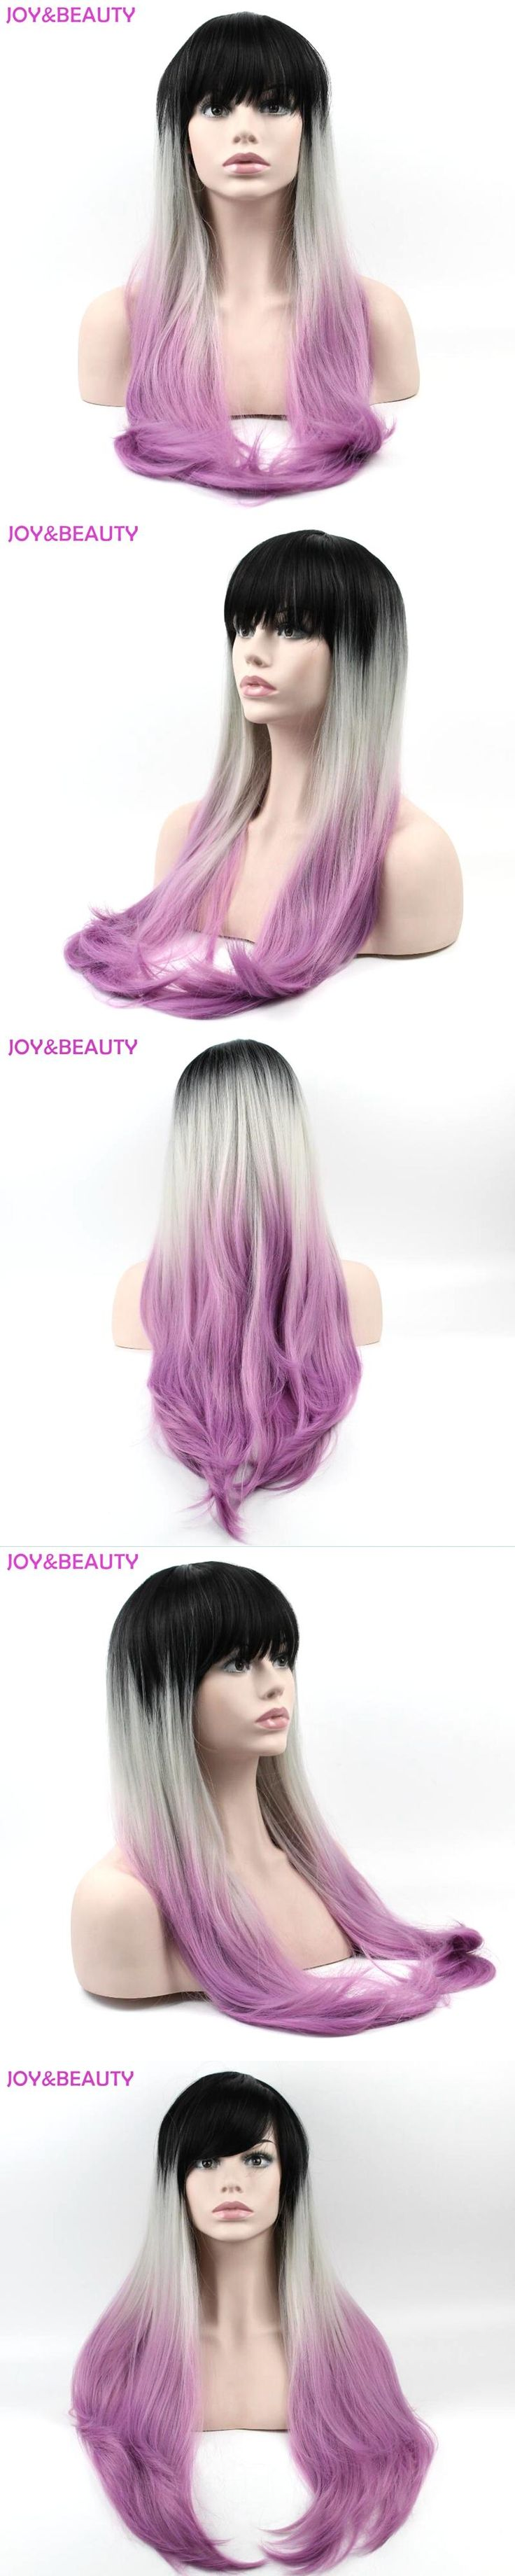 JOY&BEAUTY Hair Cosplay Wig Ombre Long Kinky Straight Wig High Temperature Fiber Natural black/Gray/Purple Wig Long 27.5inch